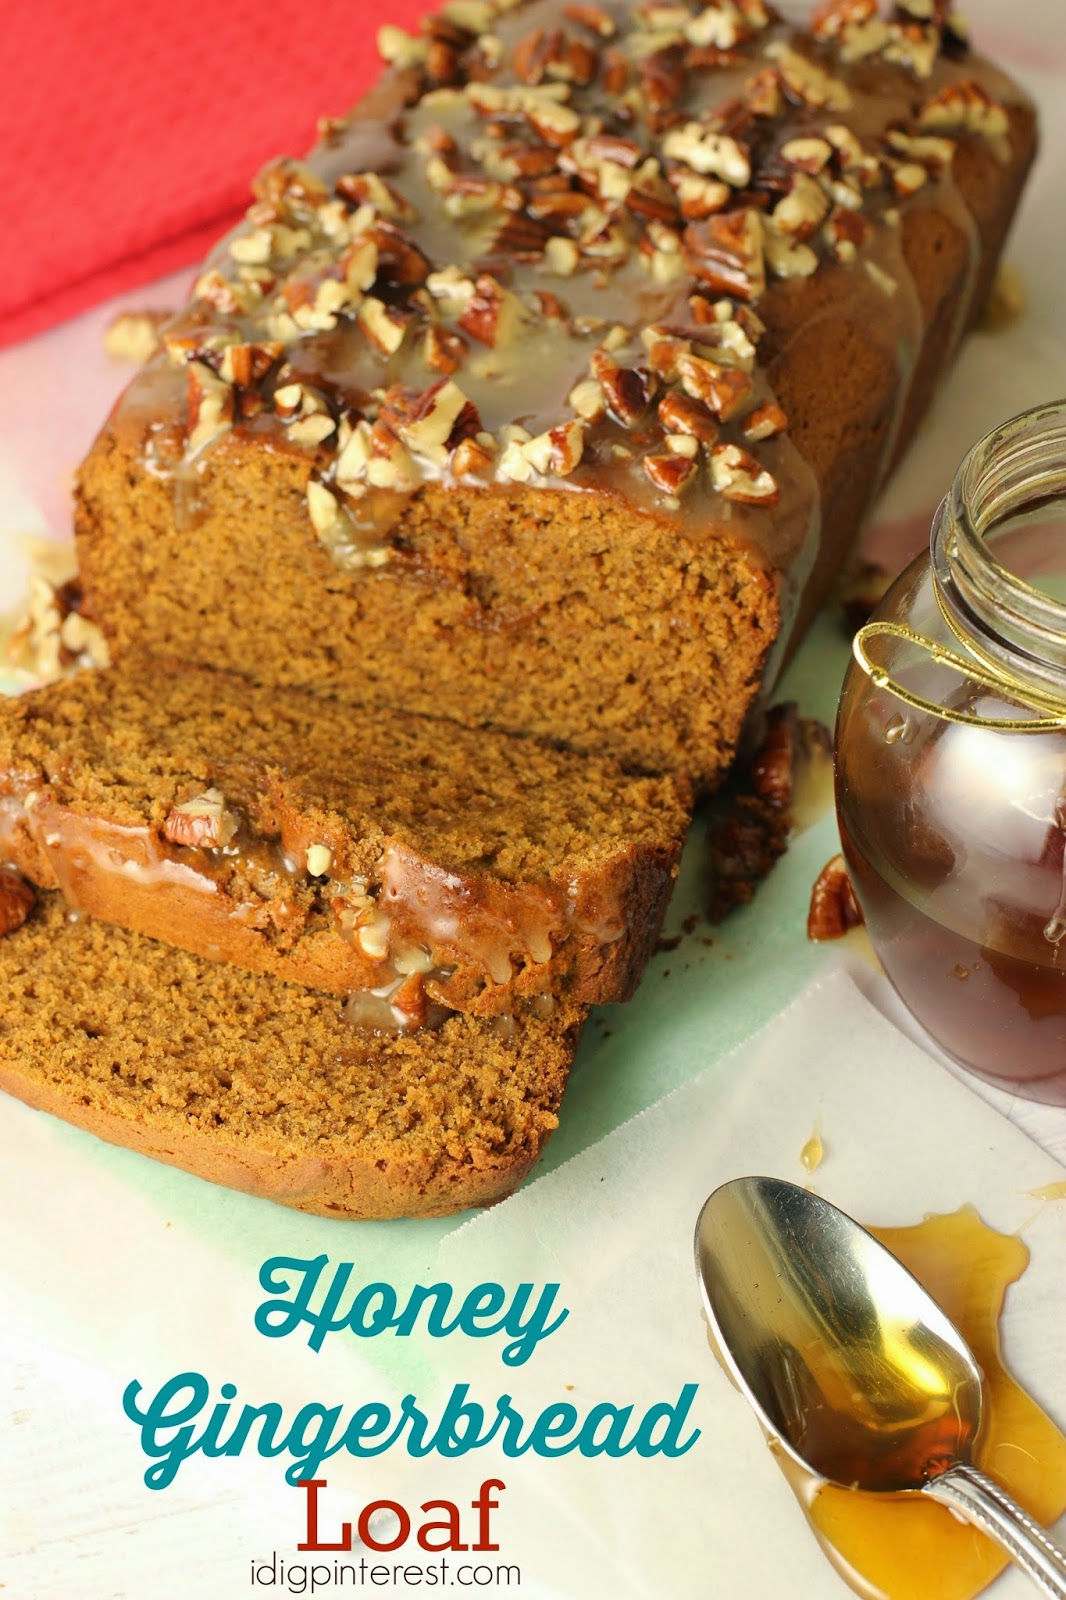 shared a recipe for Honey Gingerbread Loaf with Honey Pecan Glaze ...